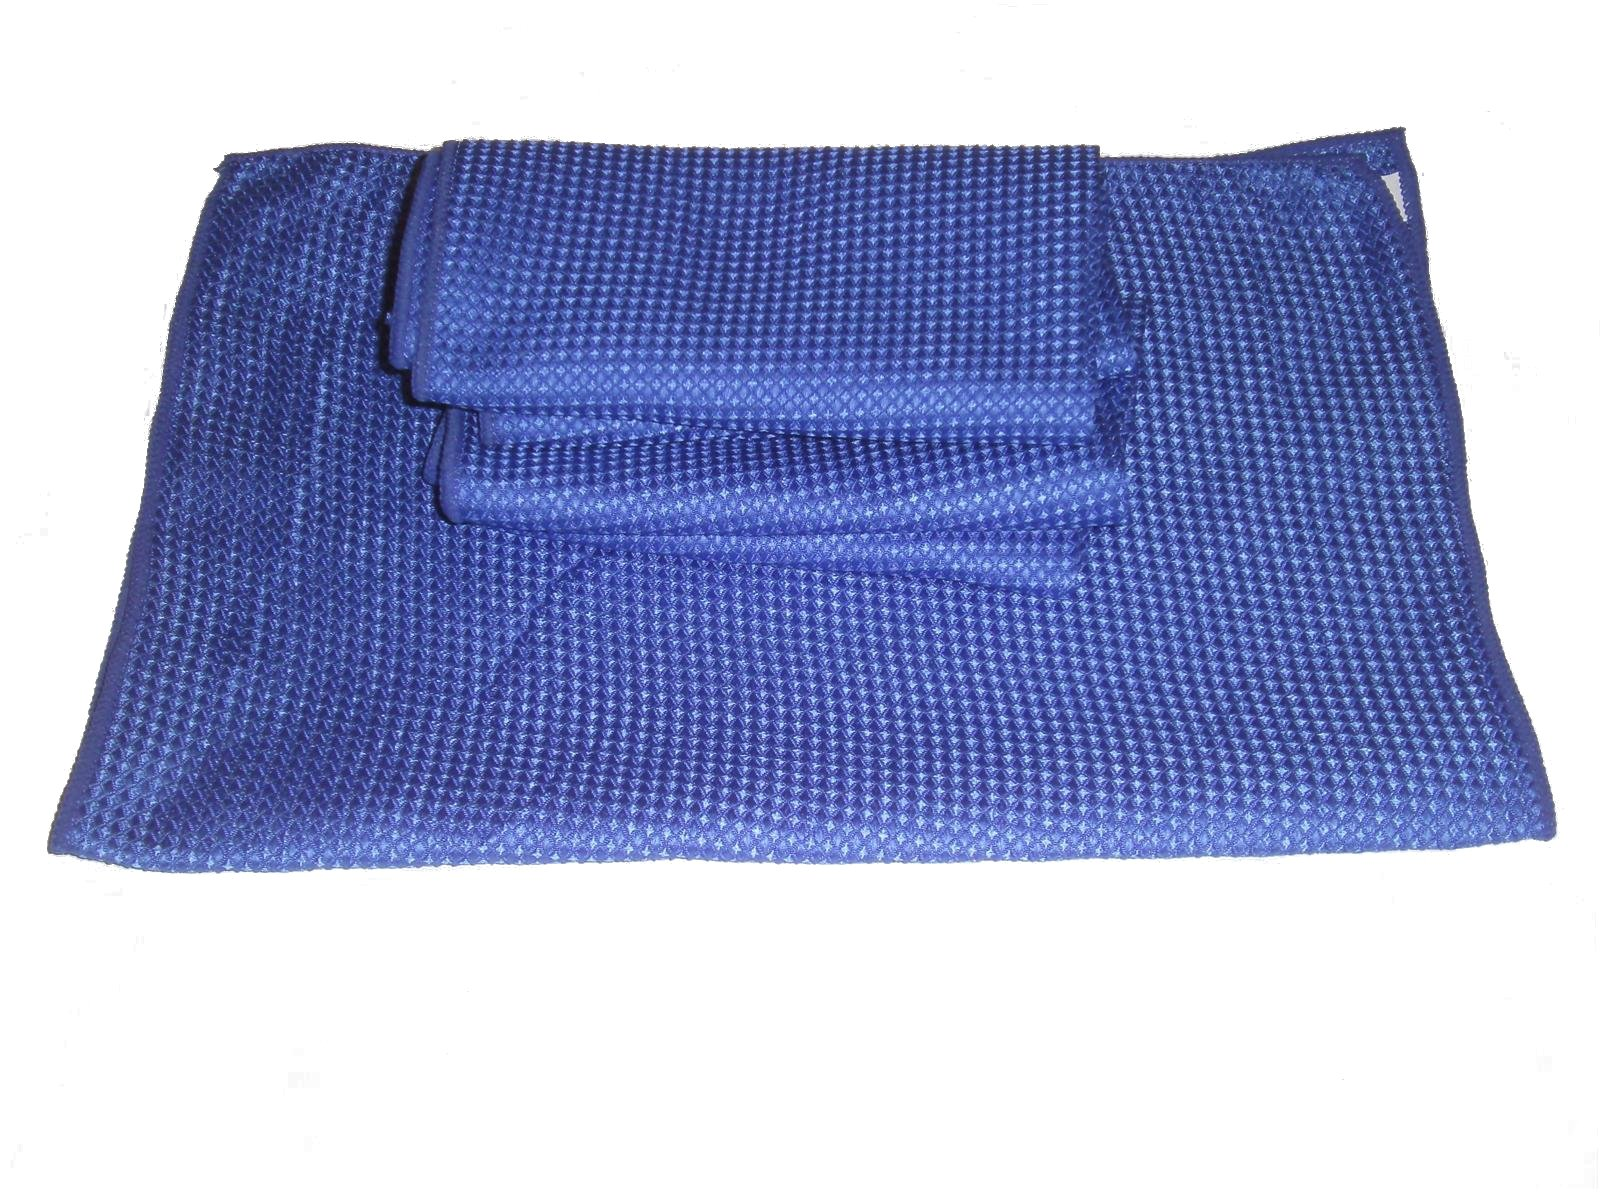 3 Pack of Blue 16'' By 24'' Waffle Weave Microfiber Towels_6 Square Feet of Professional Quality Towels Plus One Blue All Purpose Microfiber Towel.